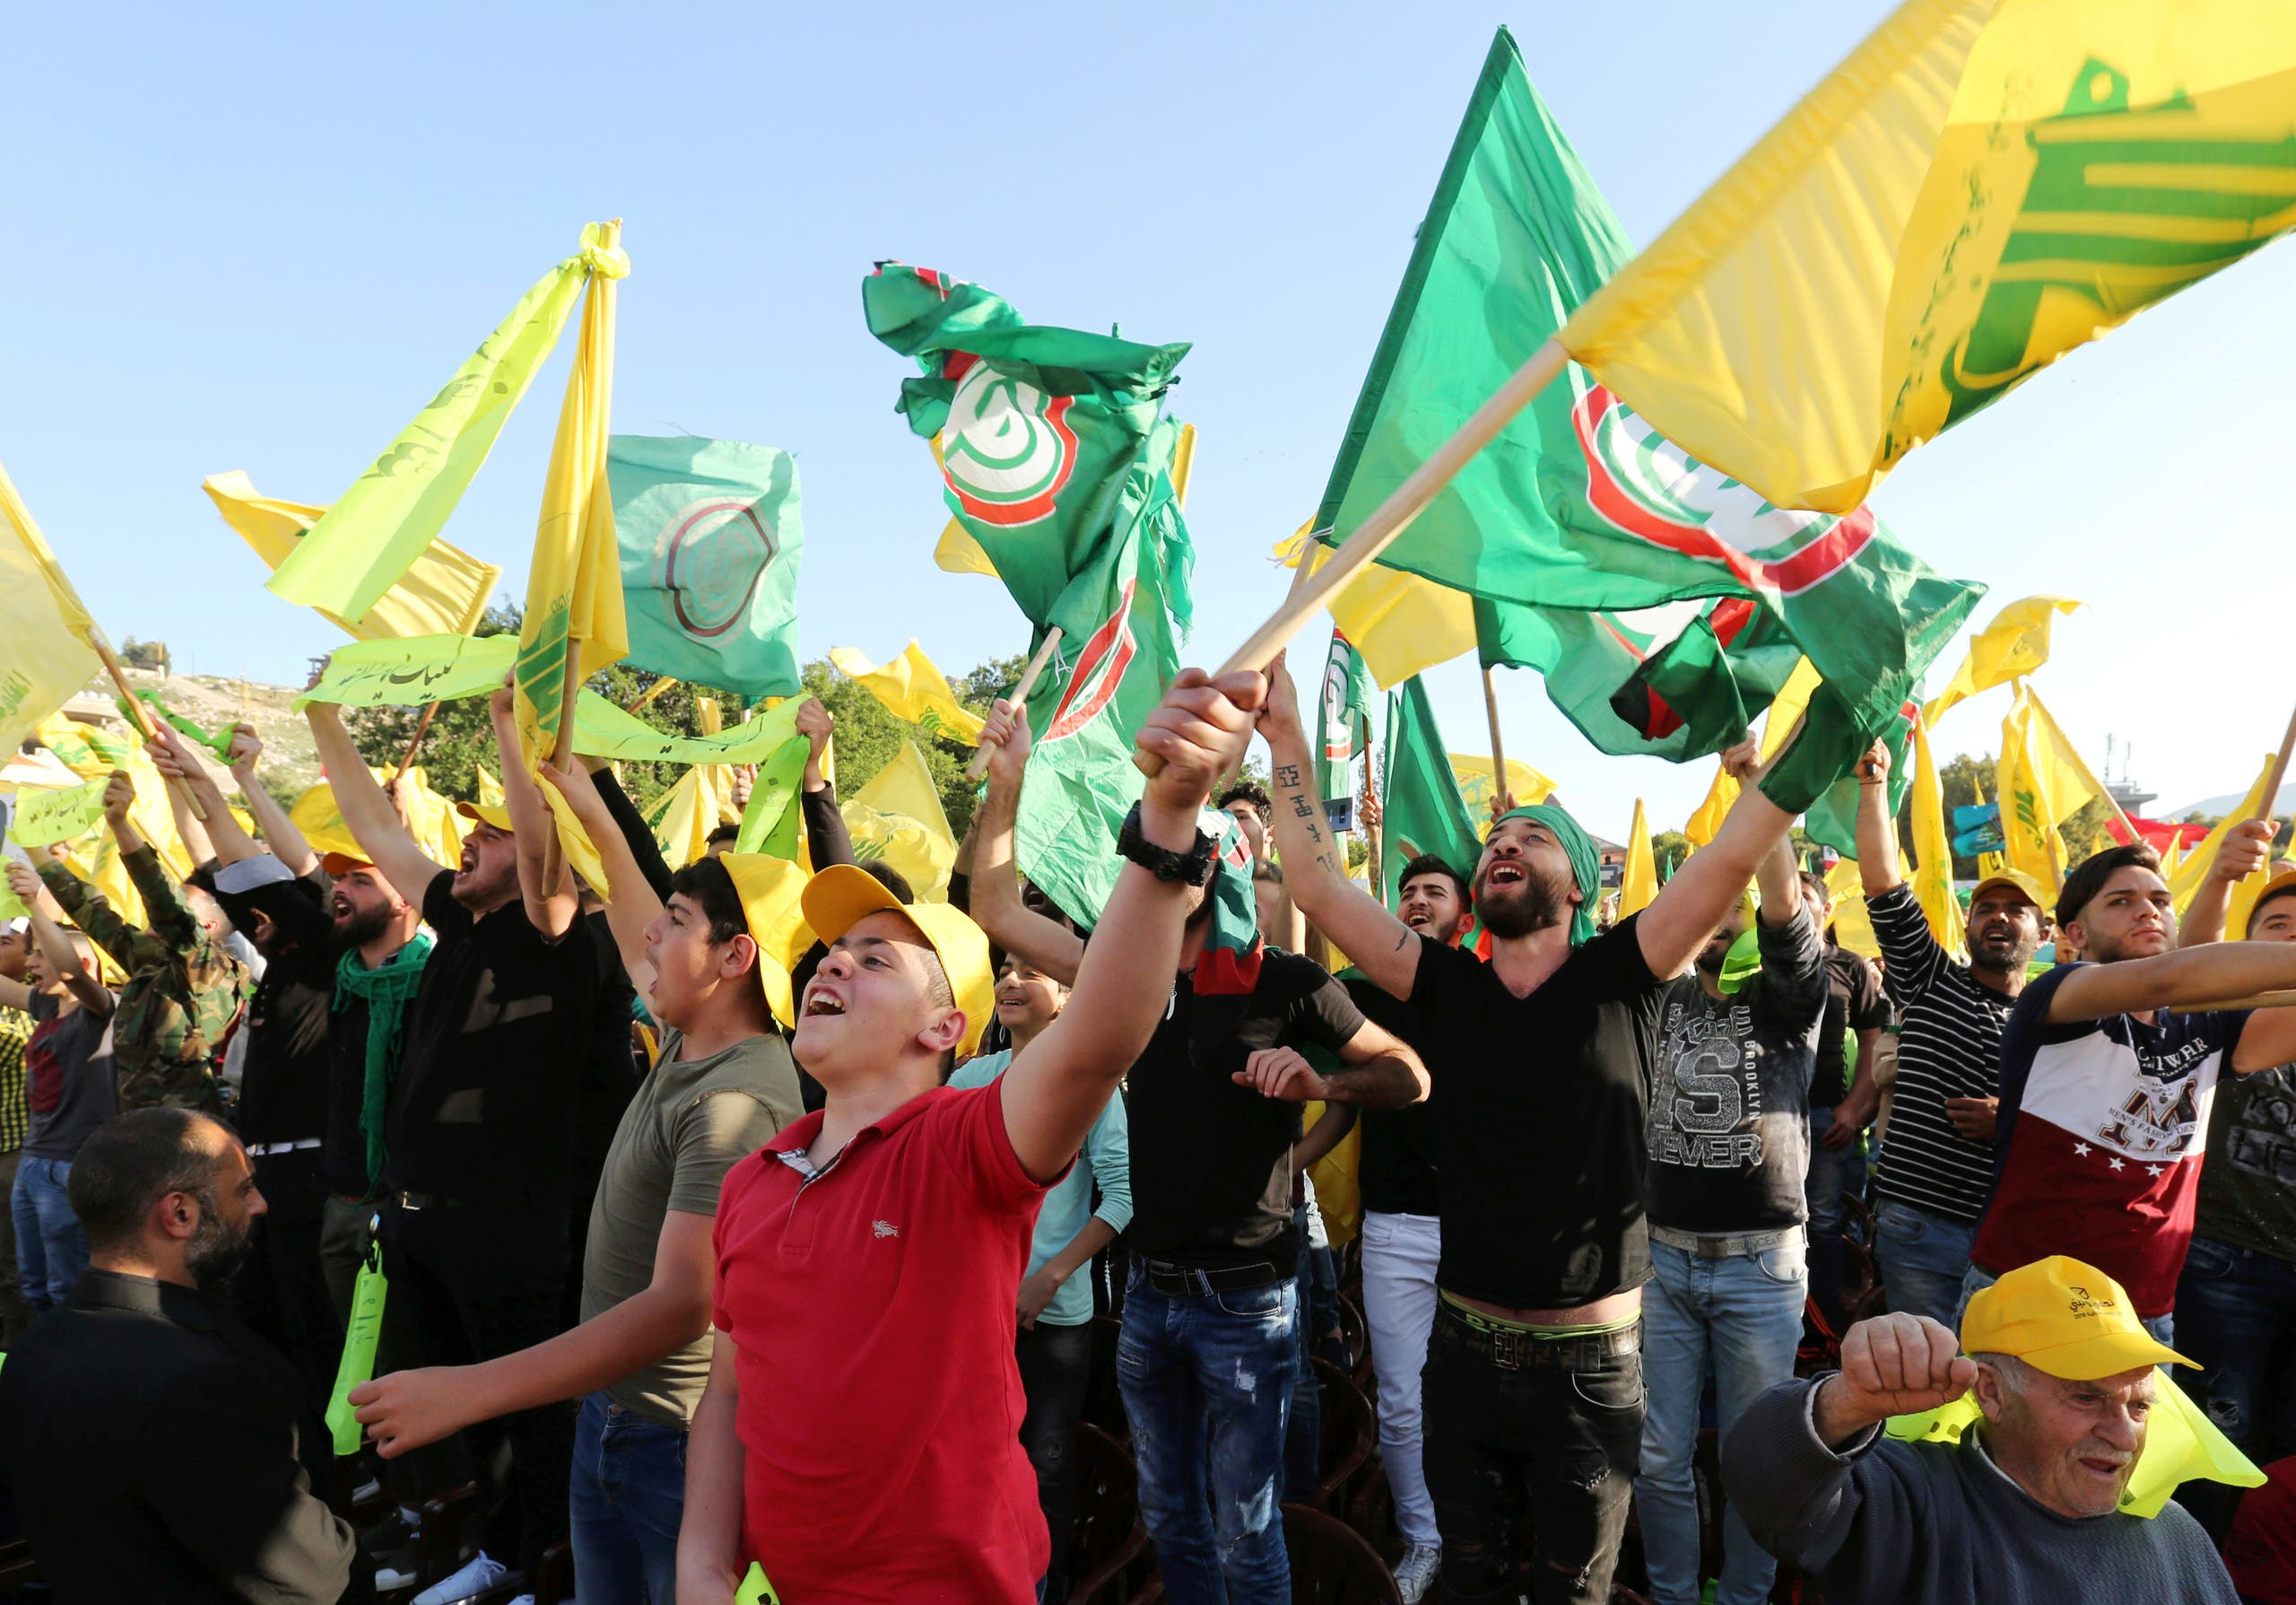 Supporters of Lebanon's Hezbollah chant slogans and hold flags as they listen to their leader Sayyed Hassan Nasrallah during a rally, in Mashghara village in the Bekaa Valley, Lebanon April 15, 2018. REUTERS/Aziz Taher